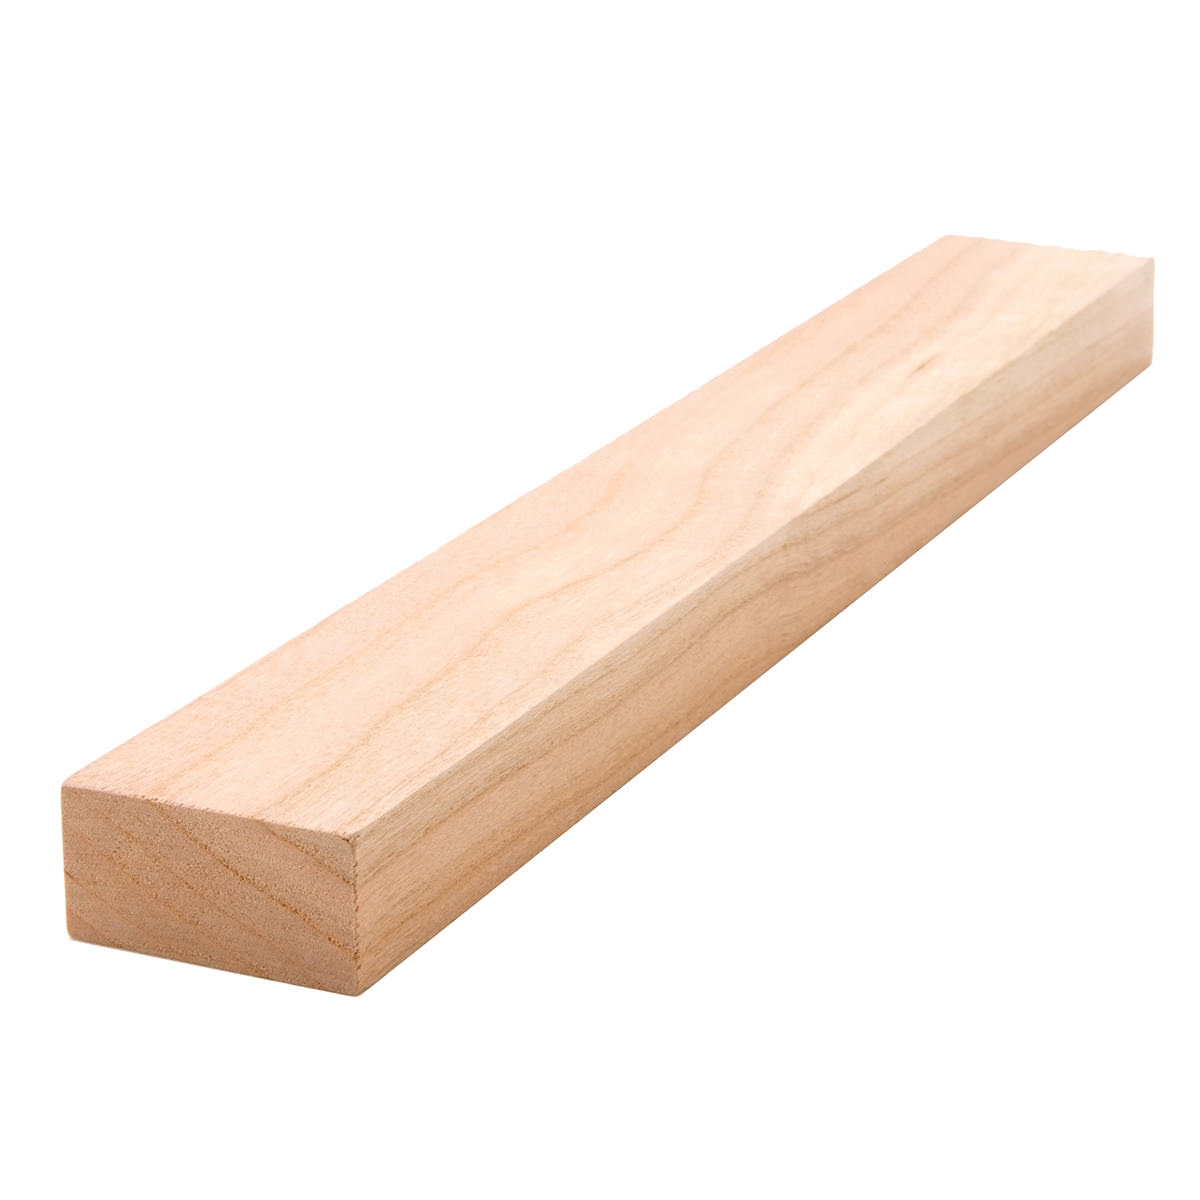 Product gallery also Wood Countertops further 34 X 1 12 Cherry Lumber 1x2 P3855 furthermore 34 X 1 34 Red Oak Double Ripple Base Cap B204 P1832 further Tasmanian Oak 18mm. on quarter sawn walnut